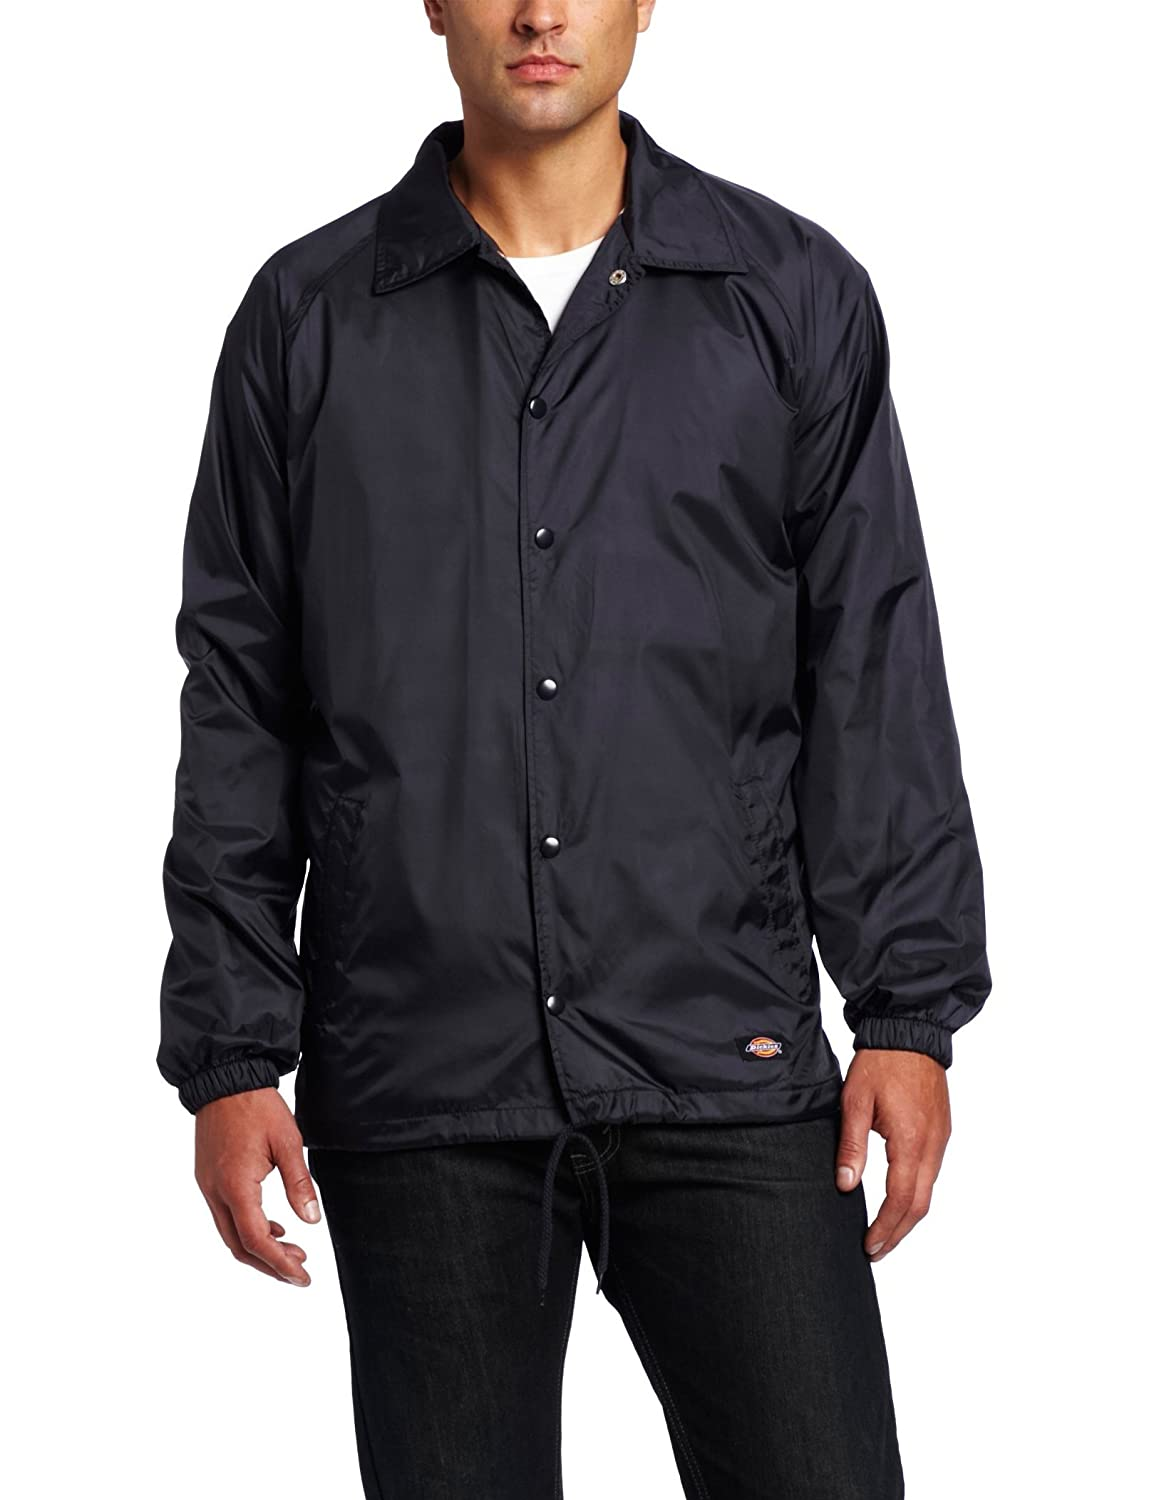 Dickies Men's Snap-Front Nylon Jacket Dickies Men' s Sportswear 76242